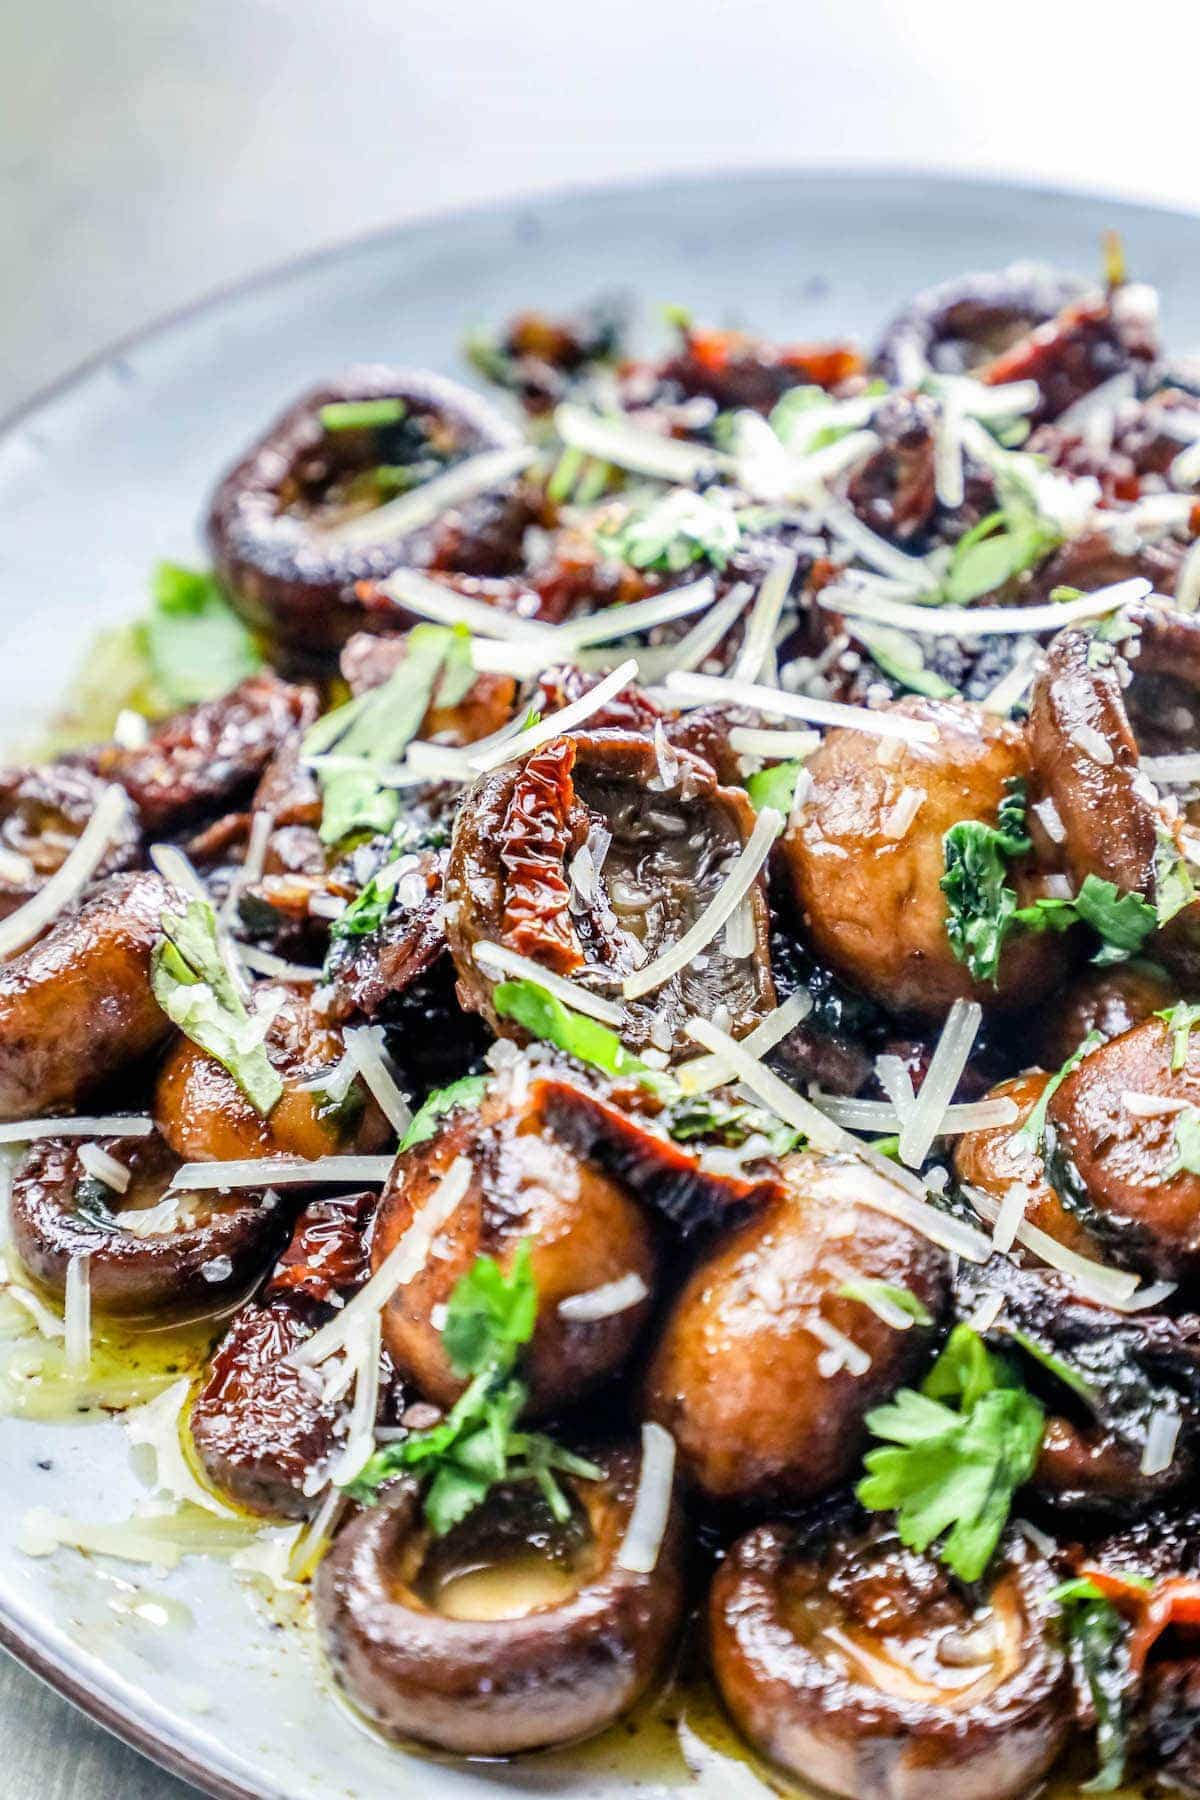 LOW CARB KETO GARLIC BUTTER PARMESAN TUSCAN MUSHROOMS - LOW CARB KETO GARLIC BUTTER PARMESAN TUSCAN MUSHROOMS